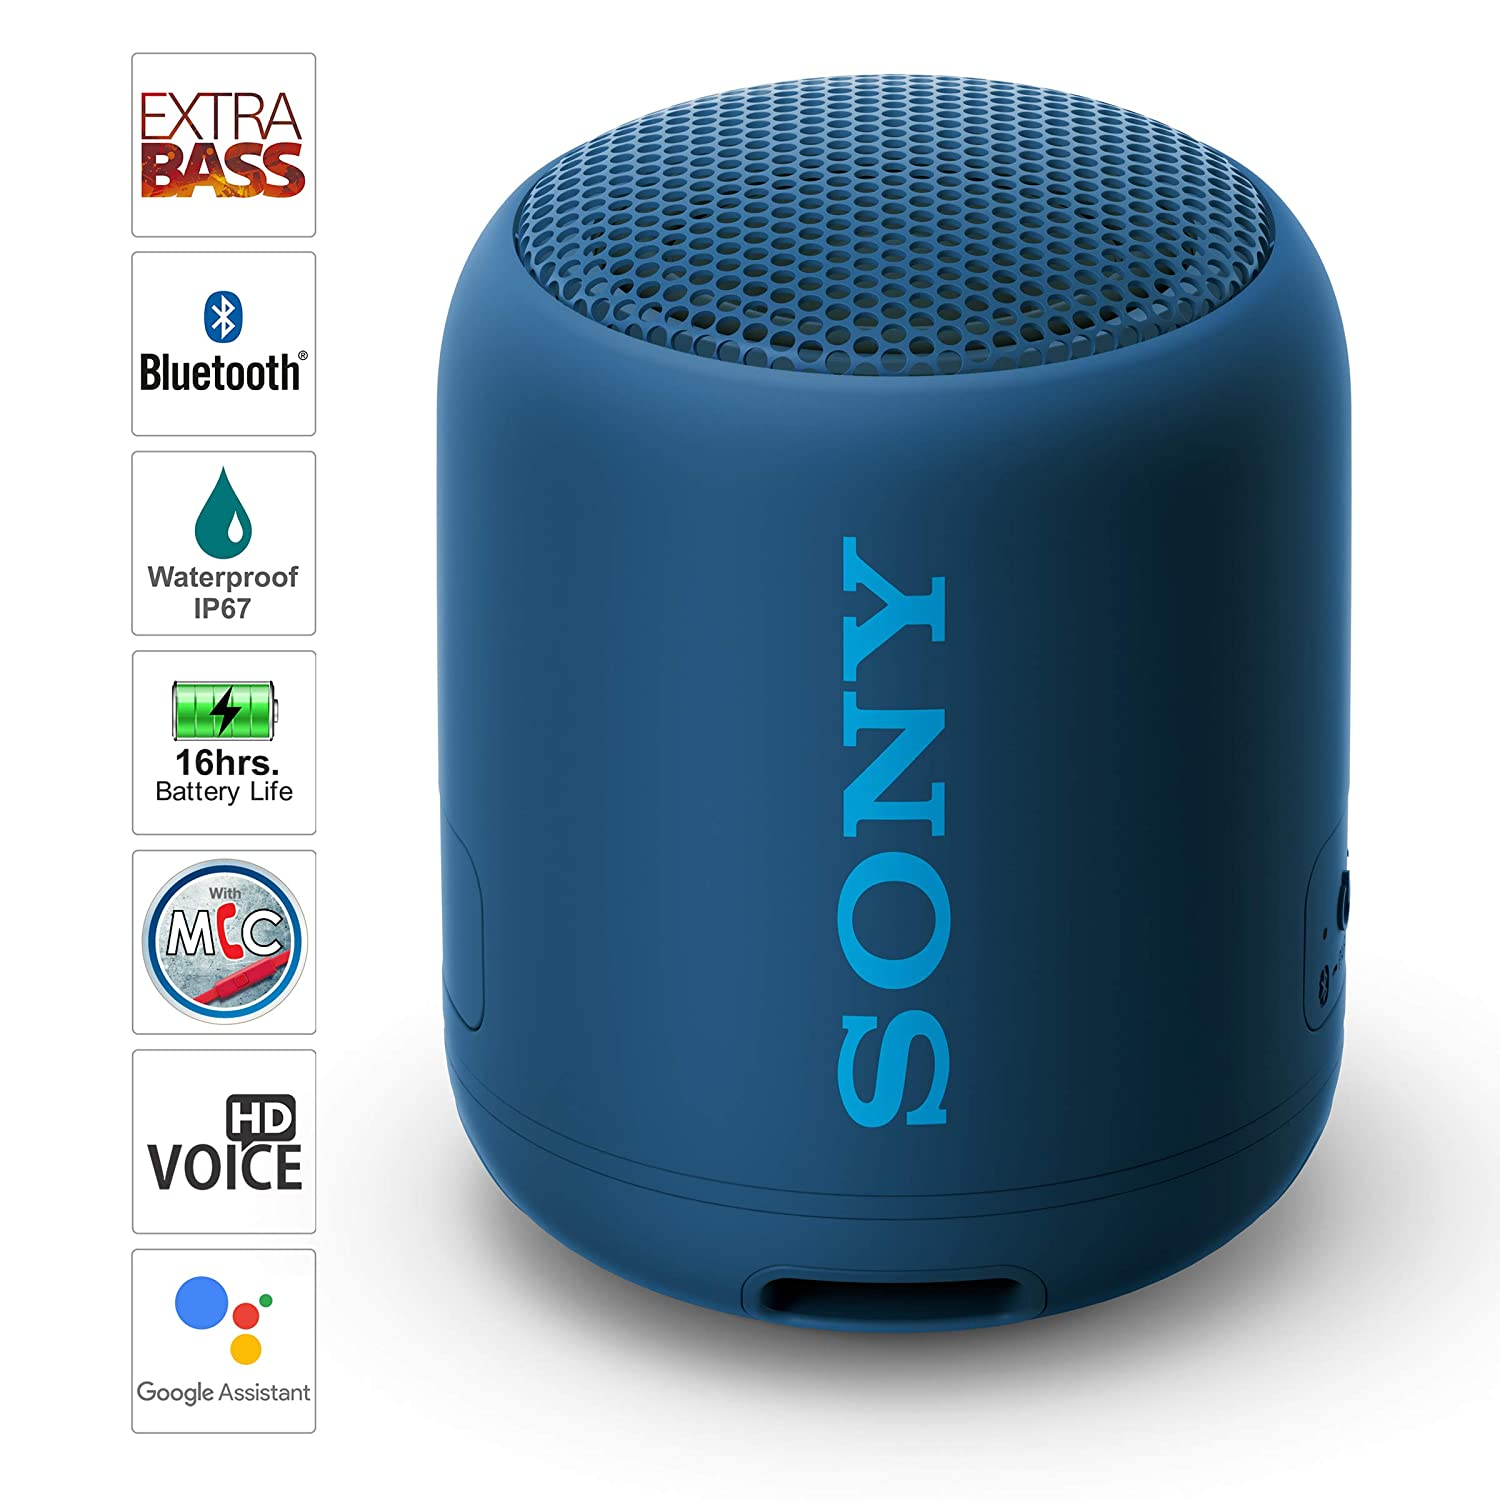 Sony SRS-XB12 Wireless Extra Bass Bluetooth Speaker with 16 Hours Battery Life, Waterproof, Dustproof, Rustproof, Speaker with Mic, Loud Audio for Phone Calls